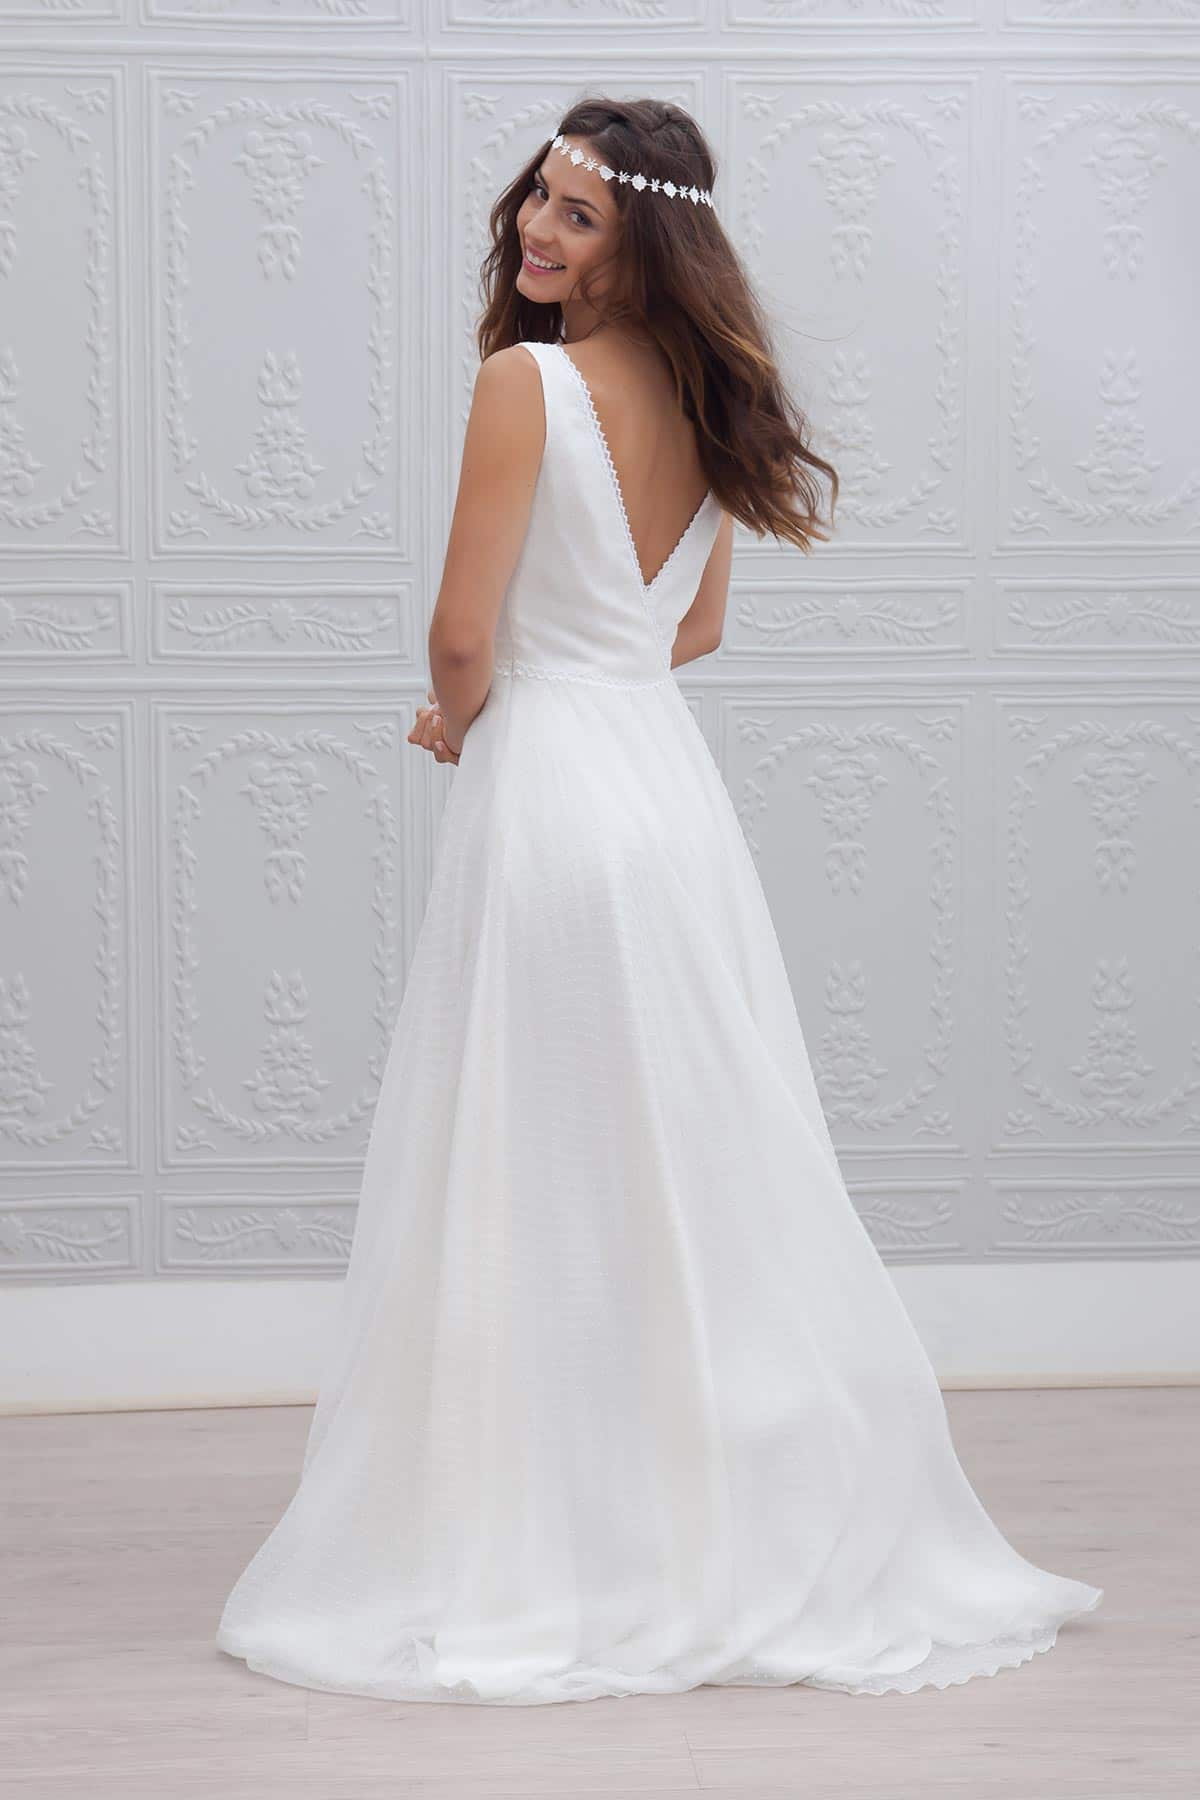 Marie Laporte collection 2015 Marie Laporte Collection 2015 15 - Blog Mariage